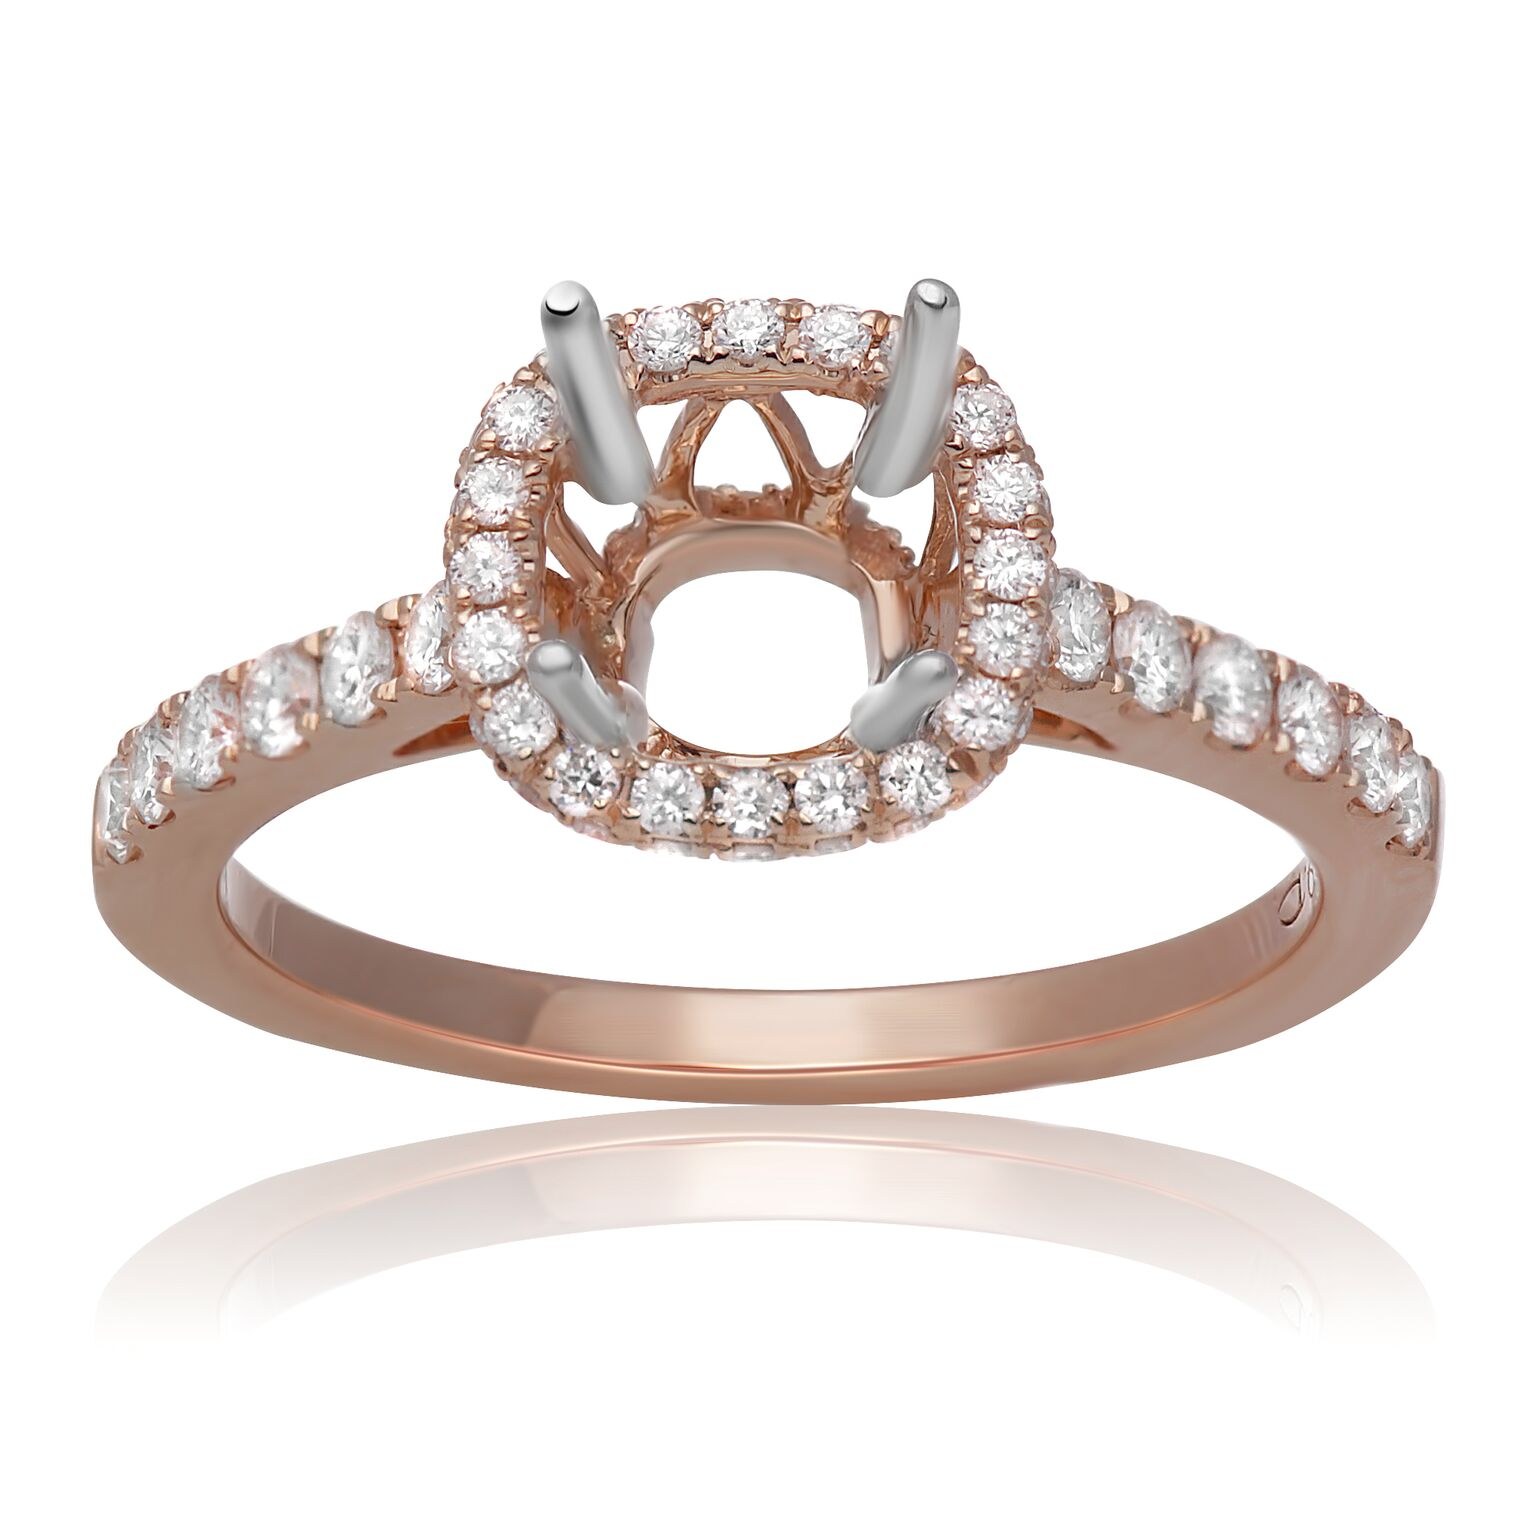 Rose Gold Round Halo Classic Diamond Engagement Ring by Roman + Jules